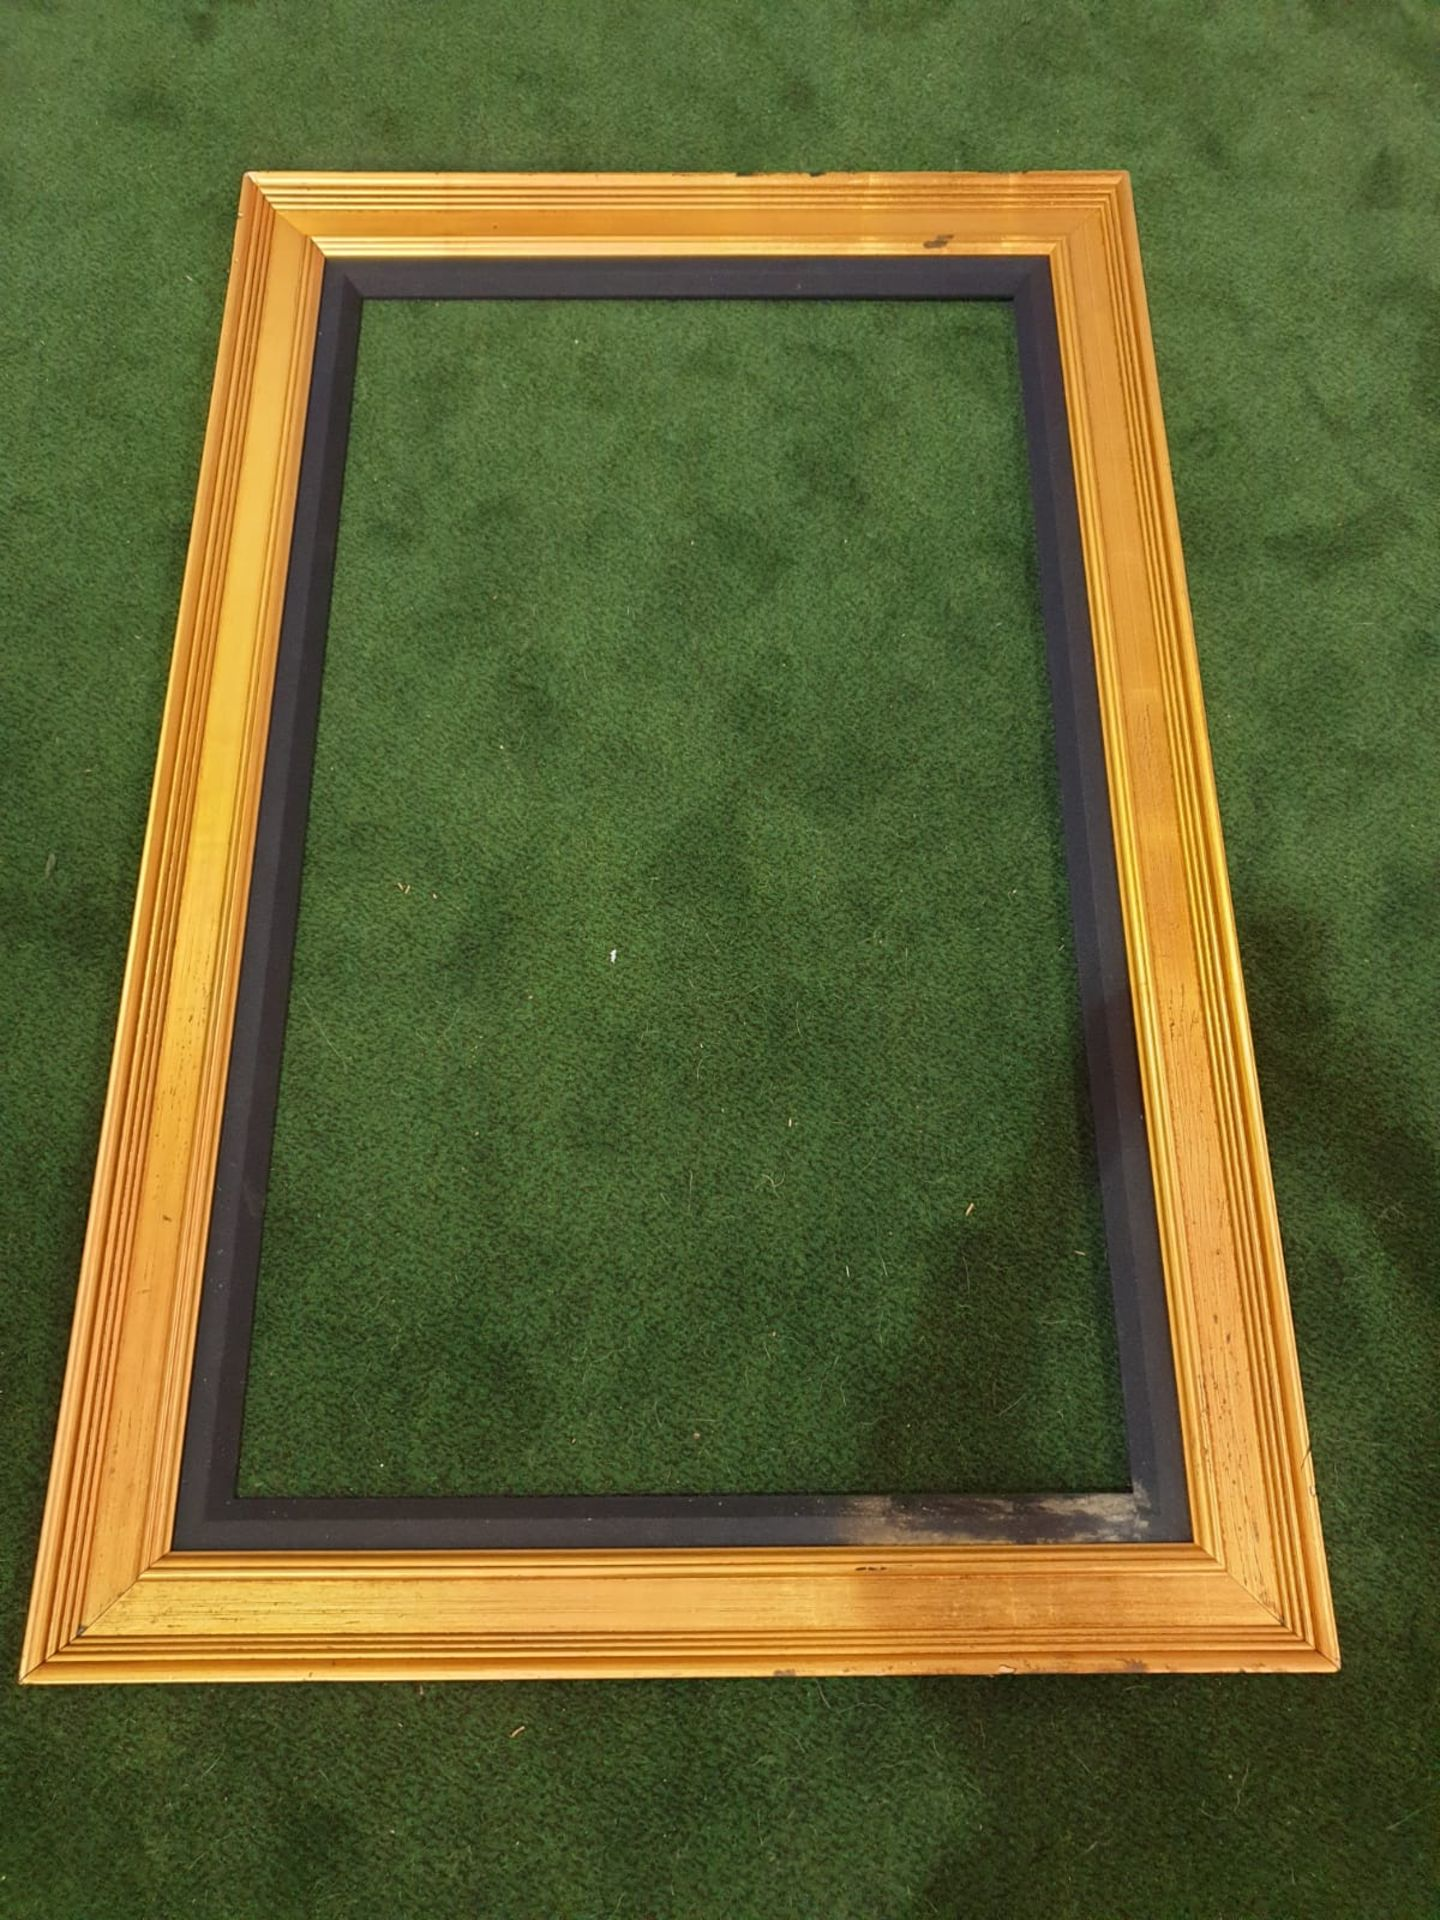 Gilt picture frame 97 x 150cm - Image 2 of 3